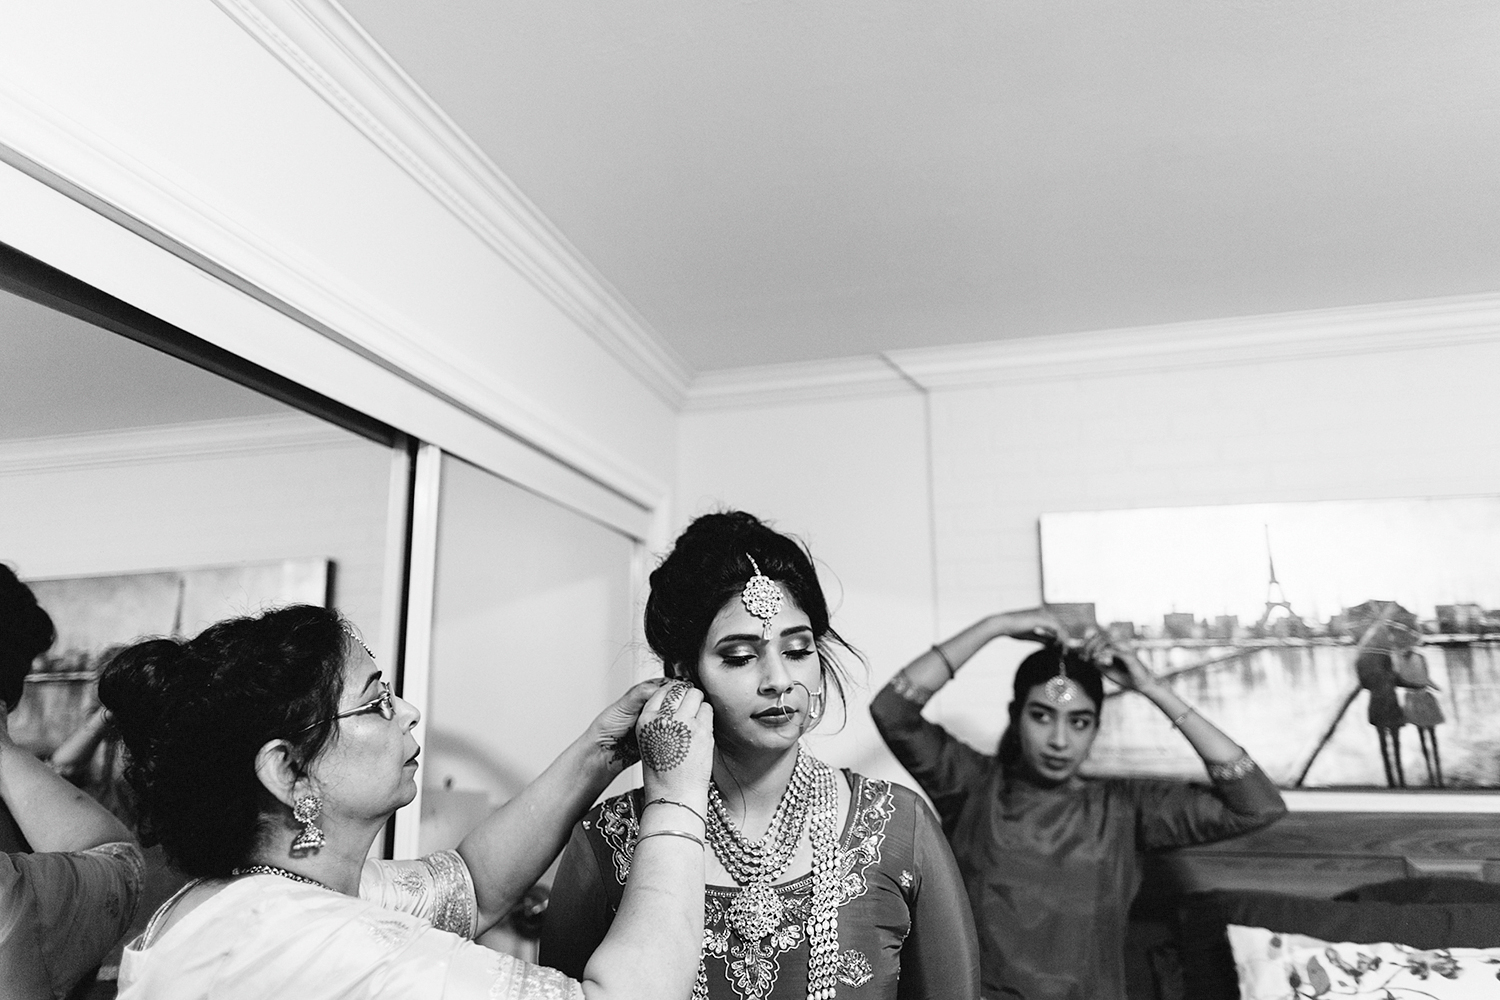 Toronto's-Best-Wedding-Photographers-Multicultural-wedding-specialty-ontario-port-perry-getting-ready-bride-putting-on-jewellery-with-moms-help.jpg